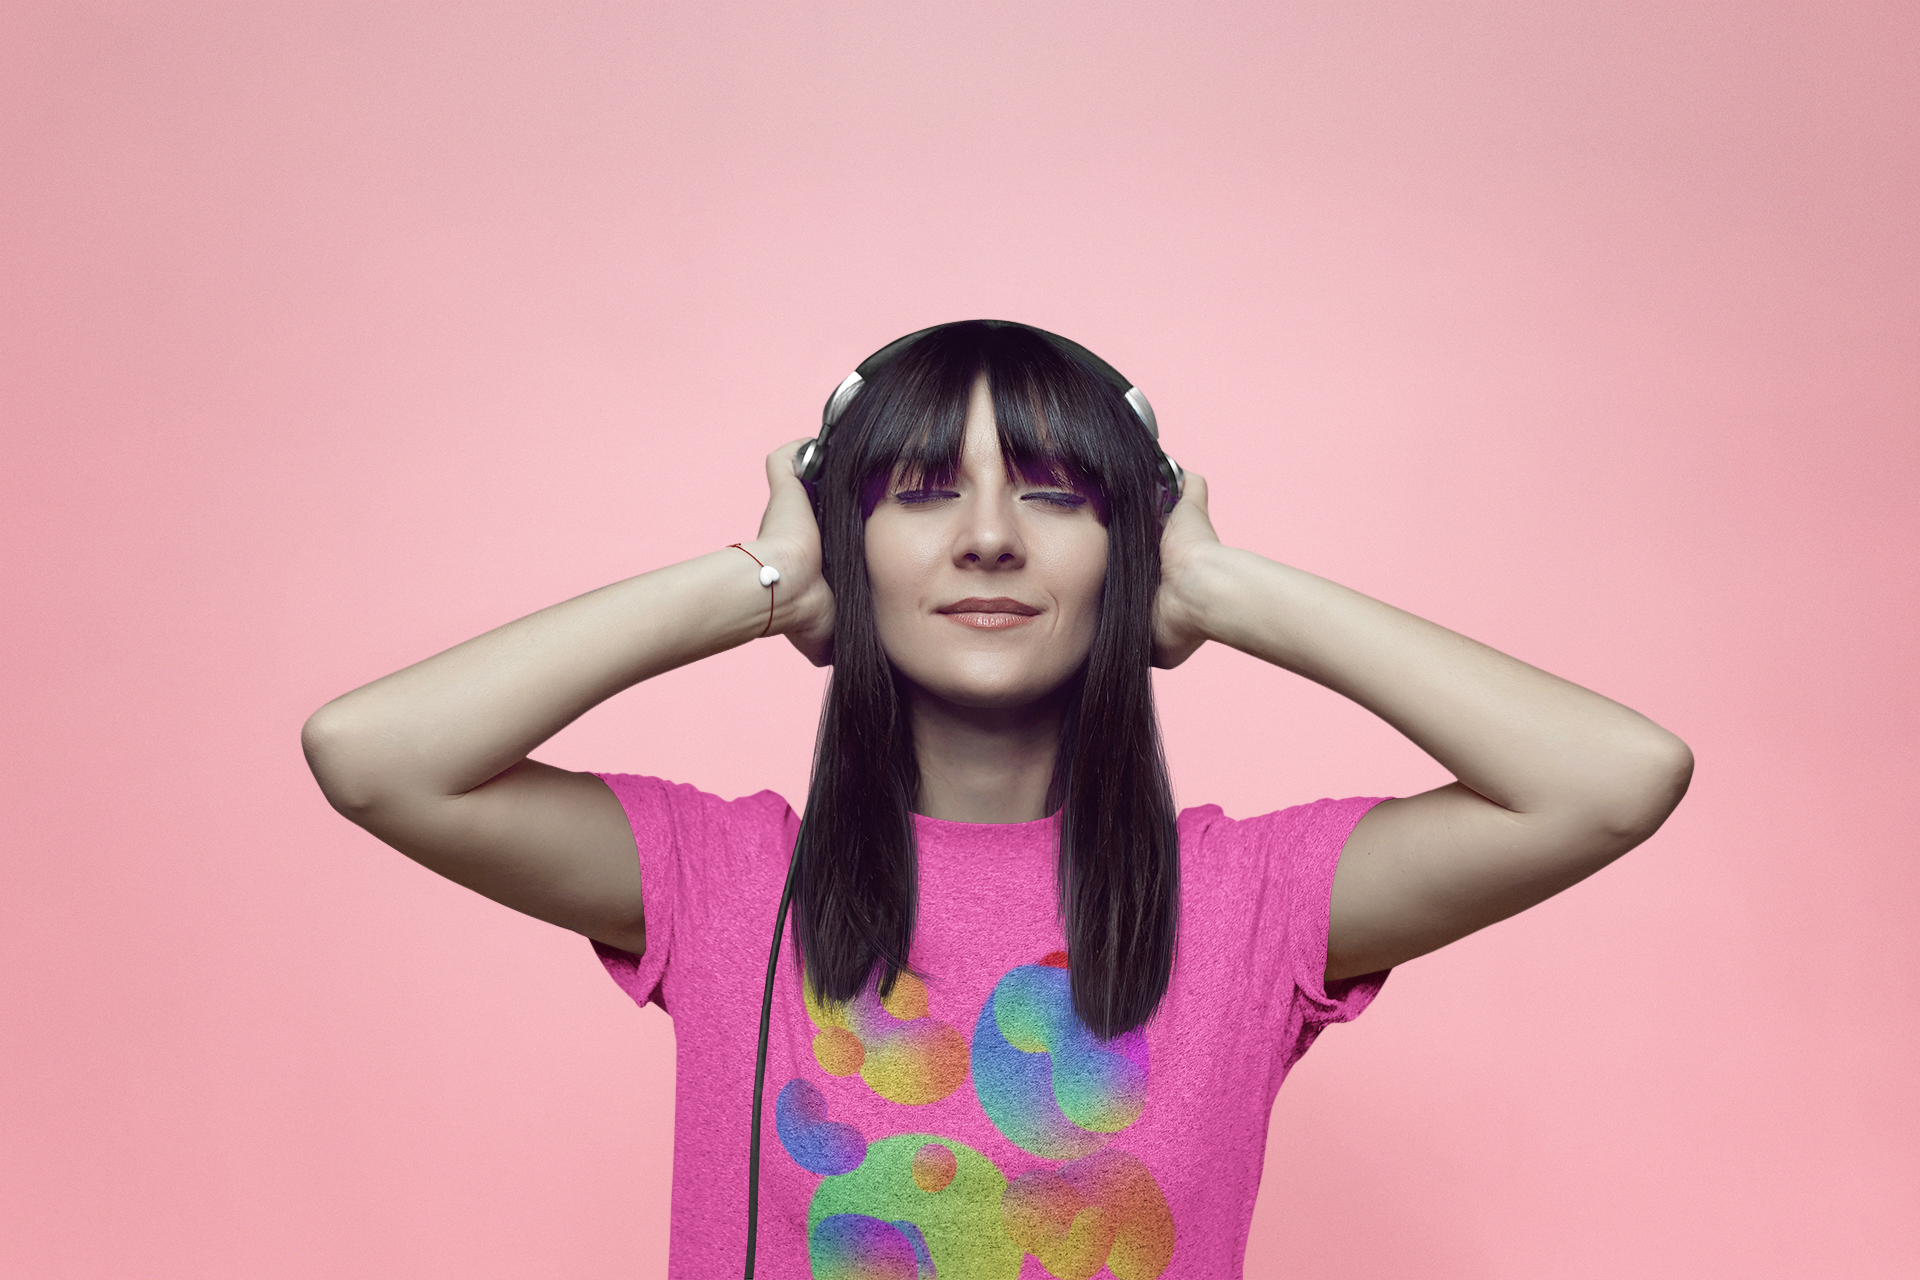 heathered-tee-mockup-of-a-woman-listening-to-music-at-a-studio-37027-r-el2